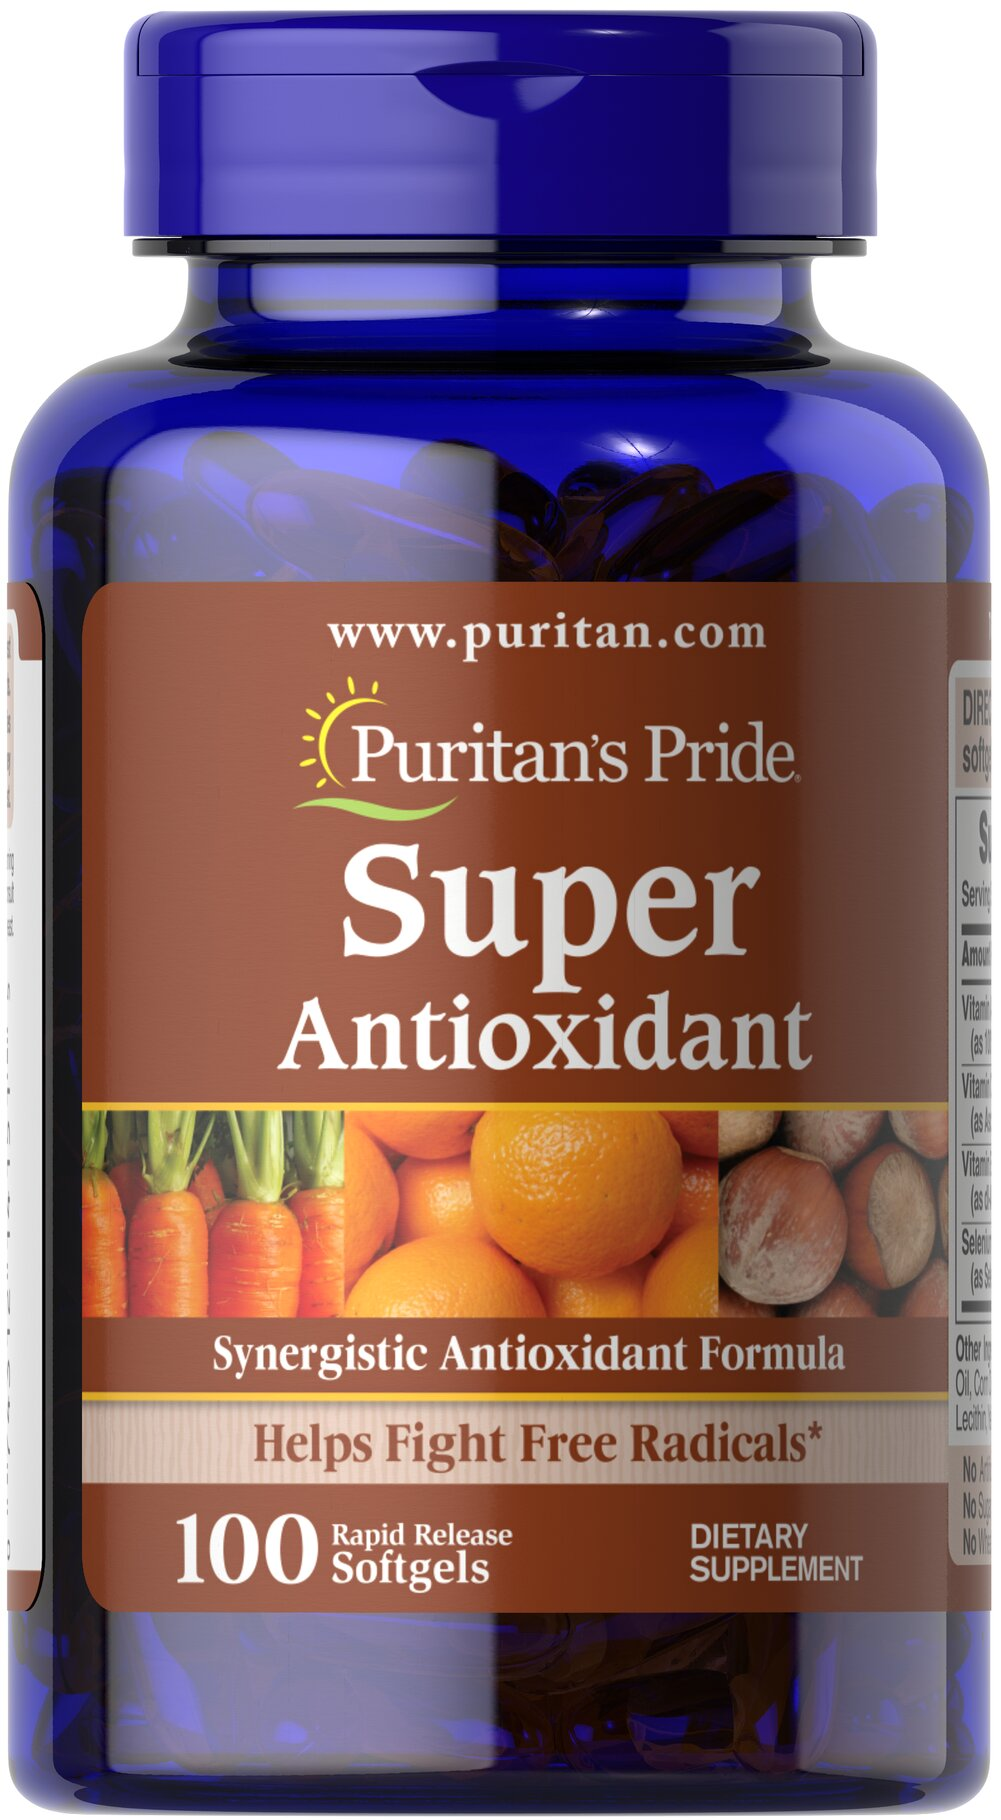 Highest antioxidant supplement